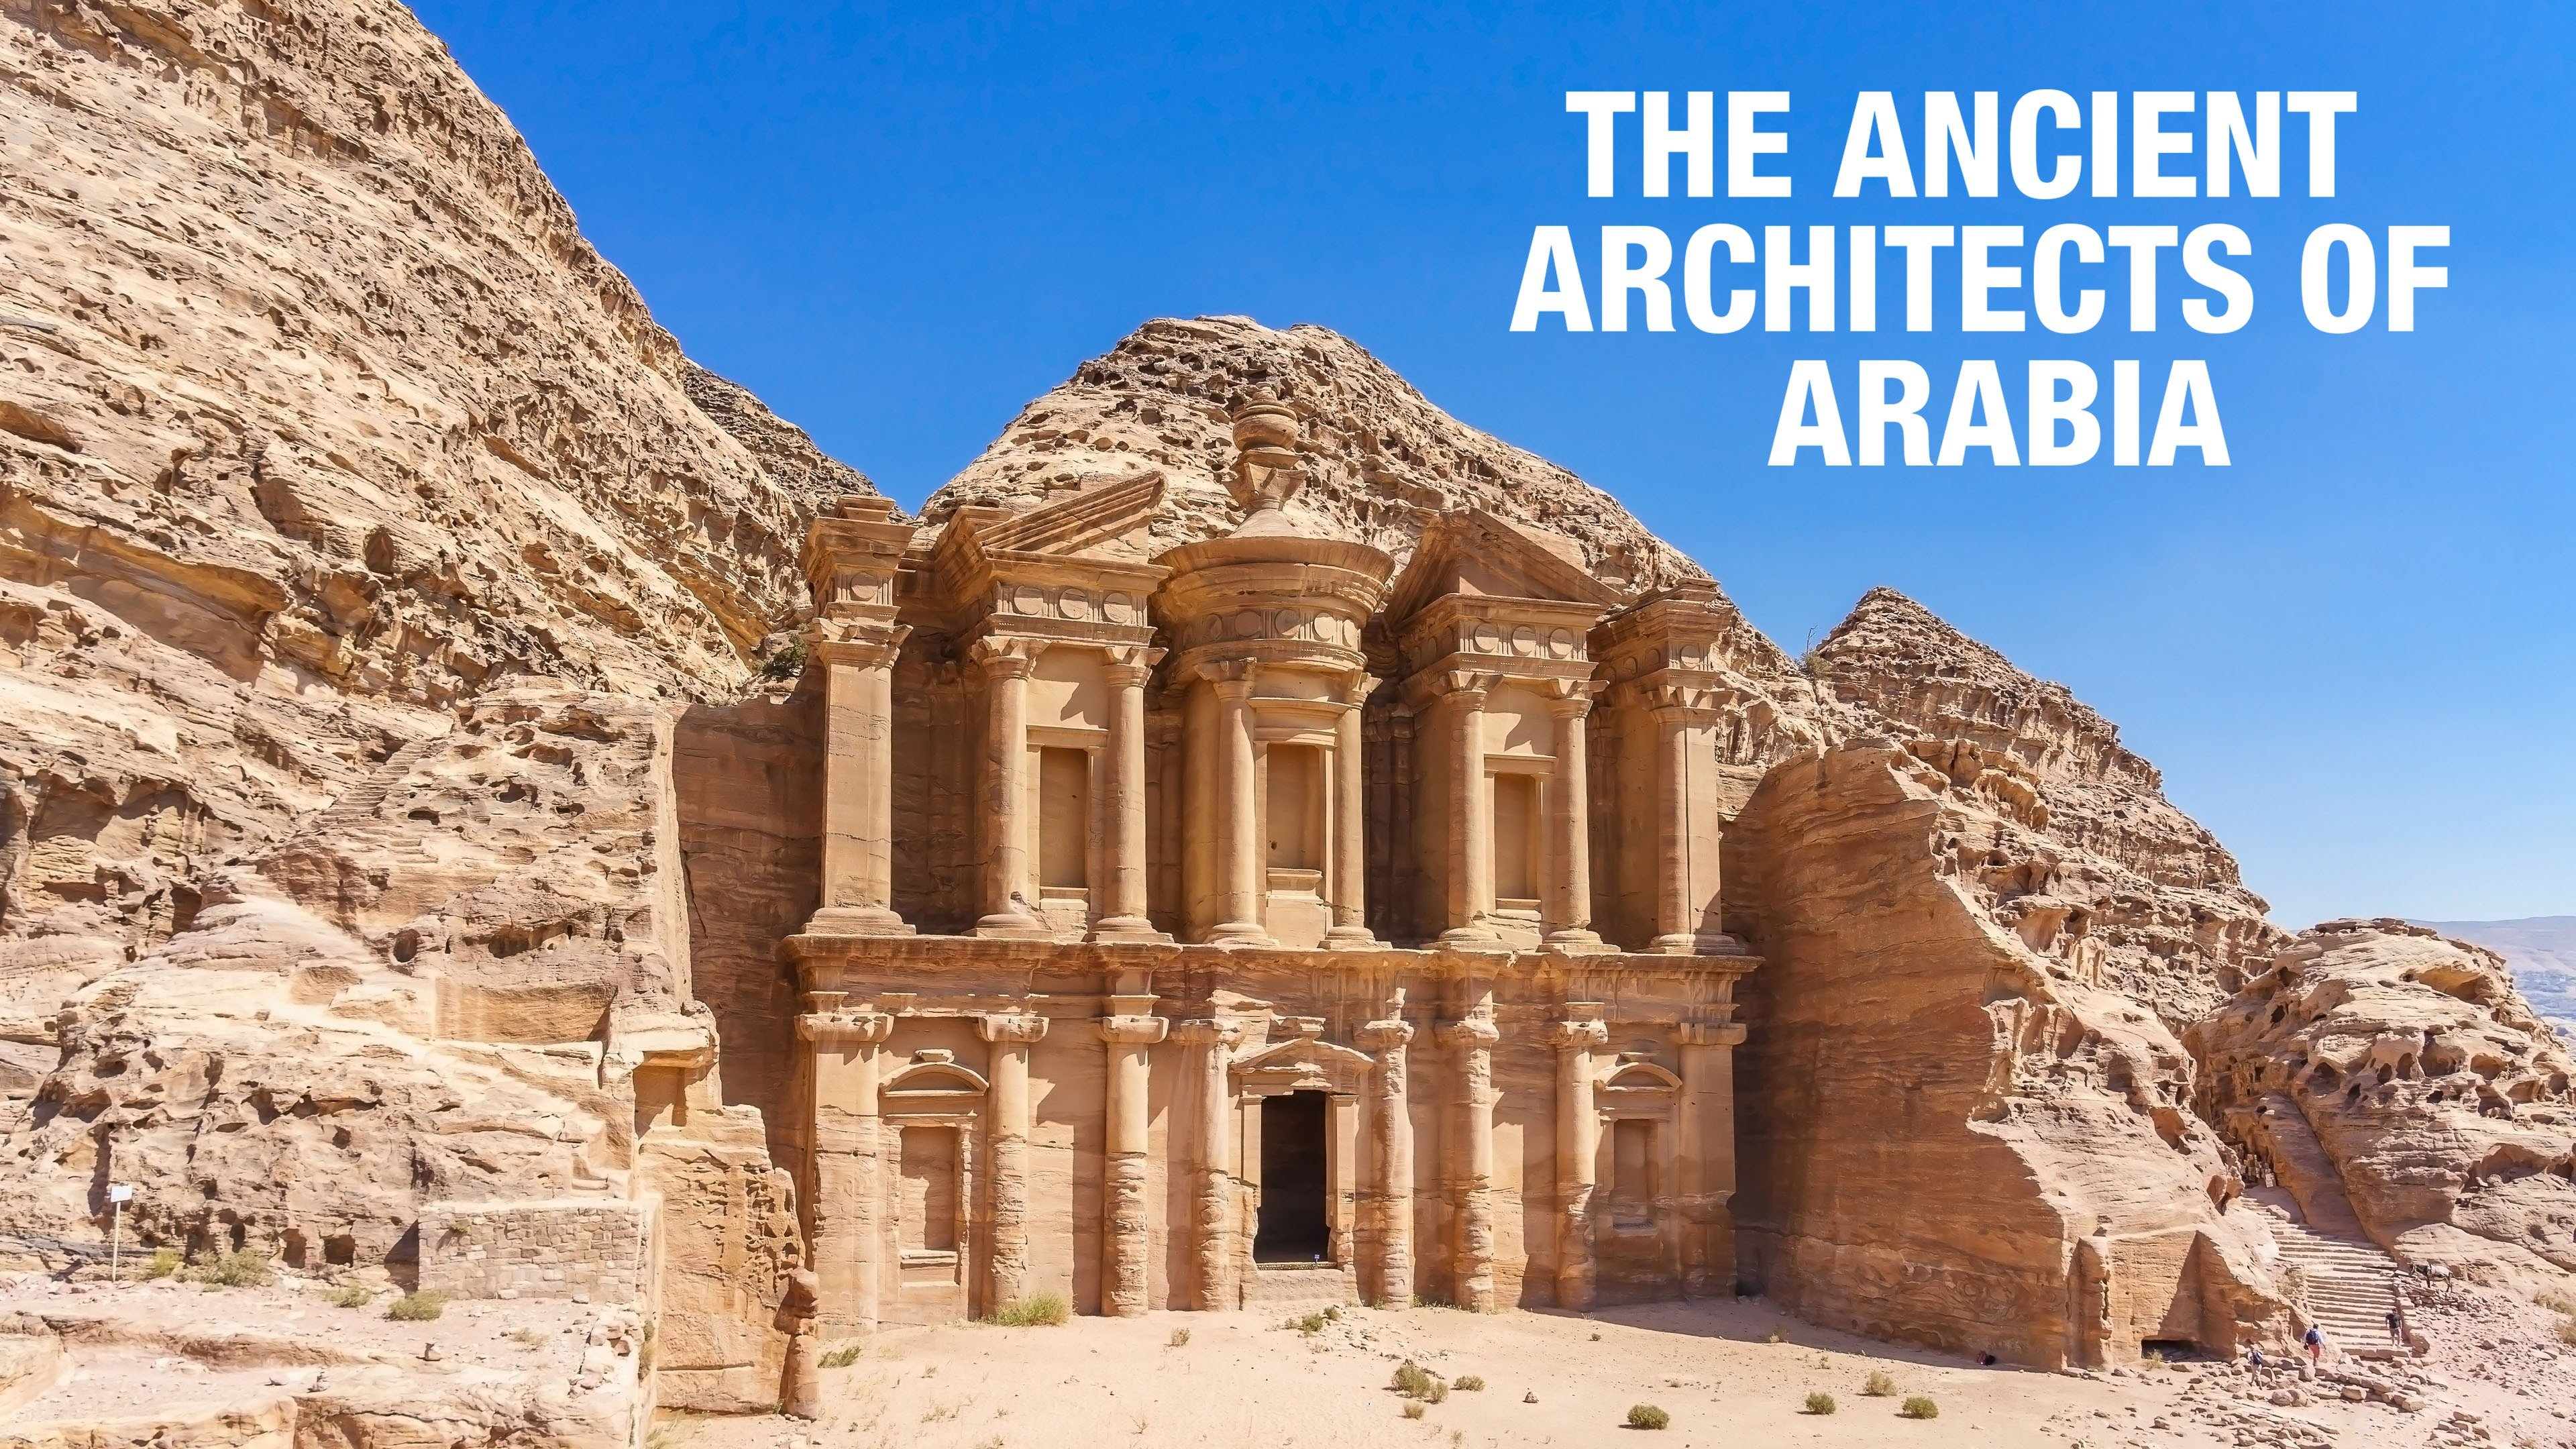 The Ancient Architects of Arabia